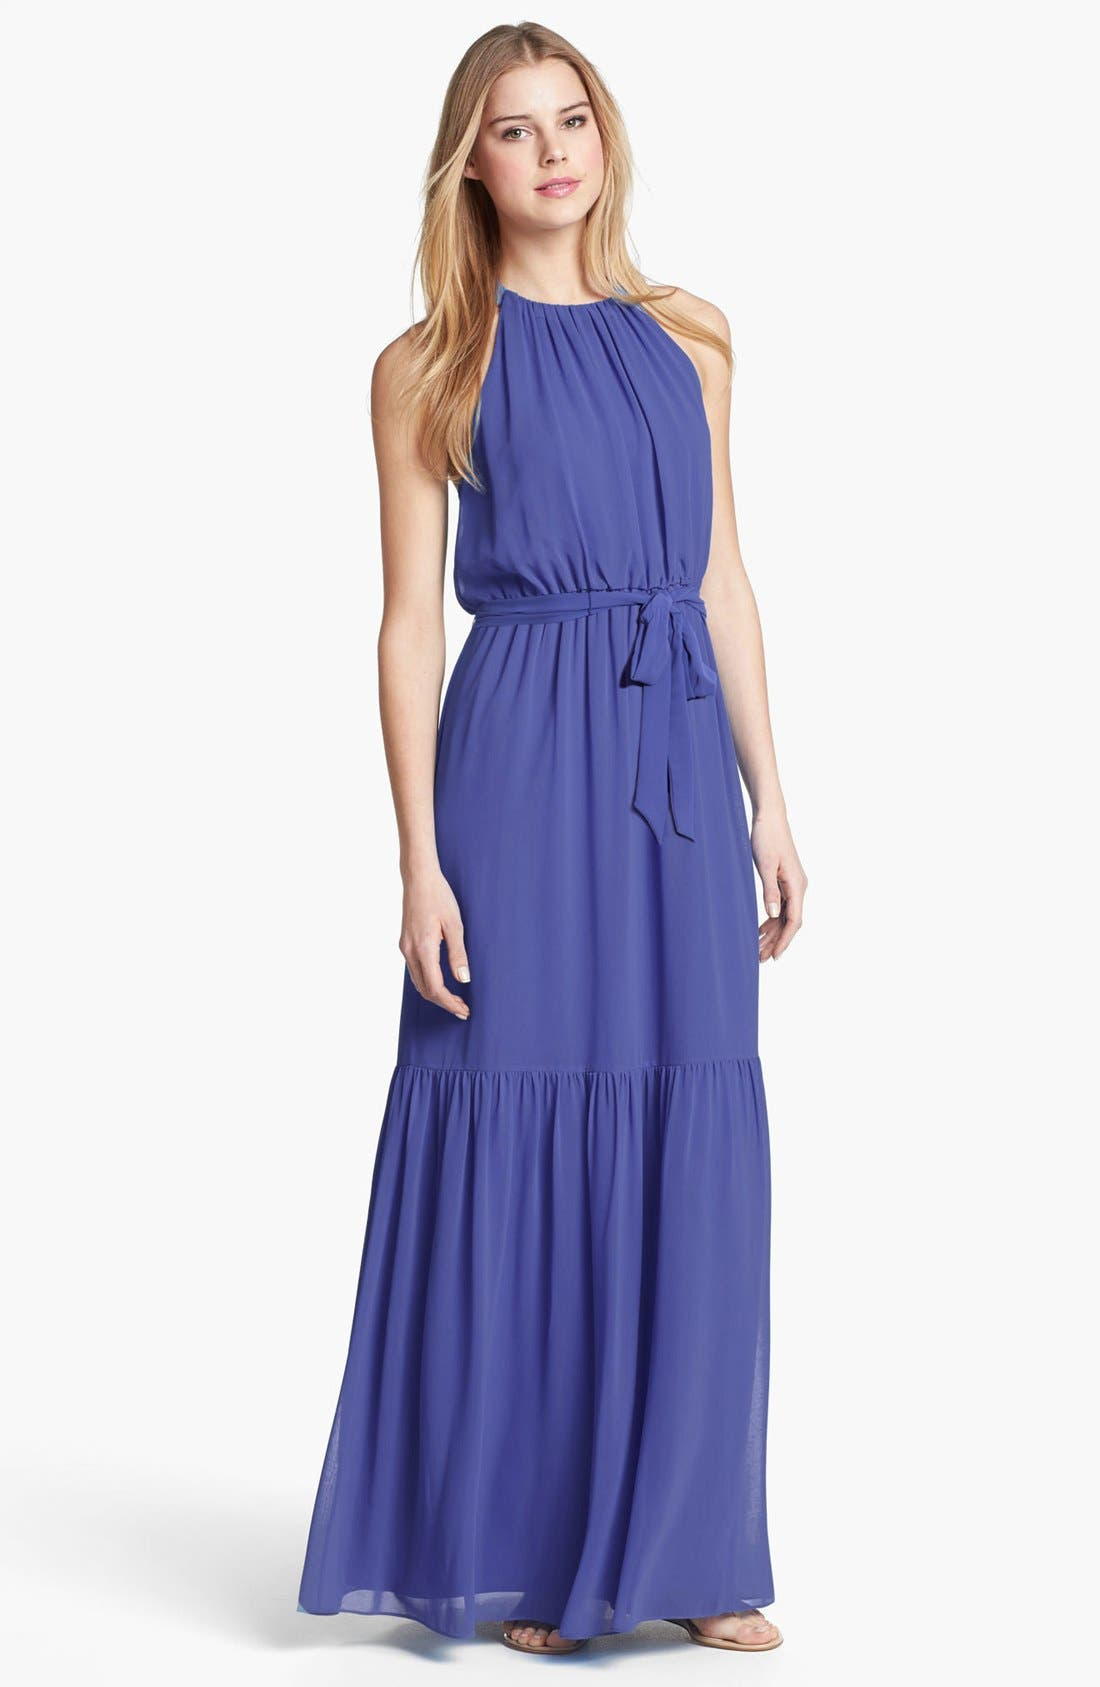 Laser Cutout Maxi Dress,                             Main thumbnail 1, color,                             522